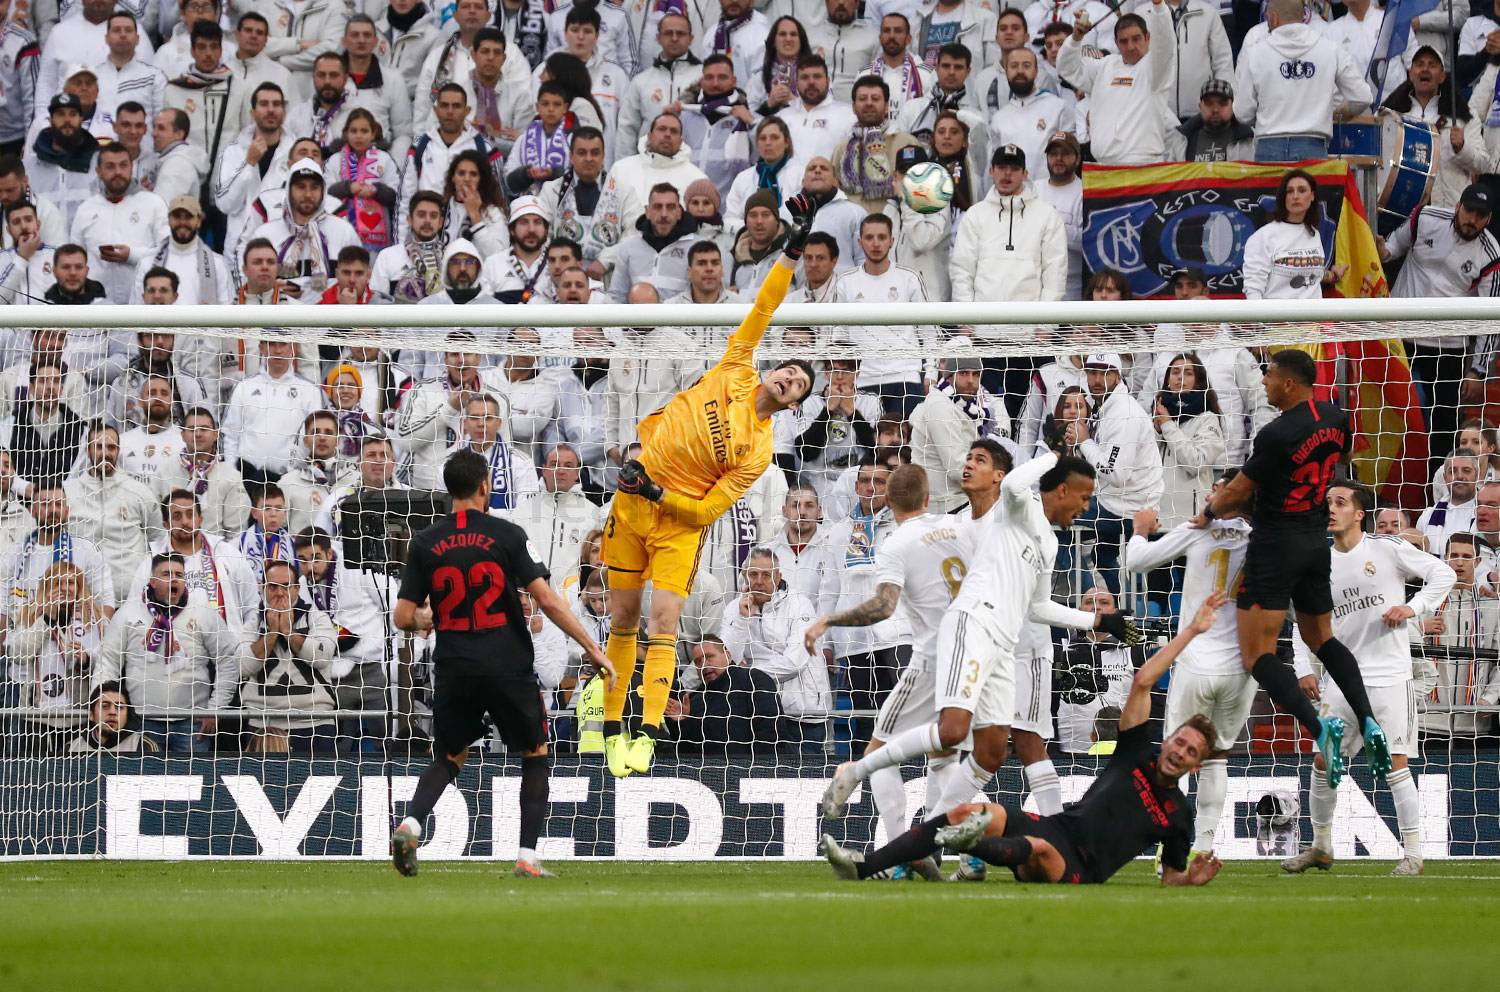 Real Madrid - Real Madrid - Sevilla - 18-01-2020